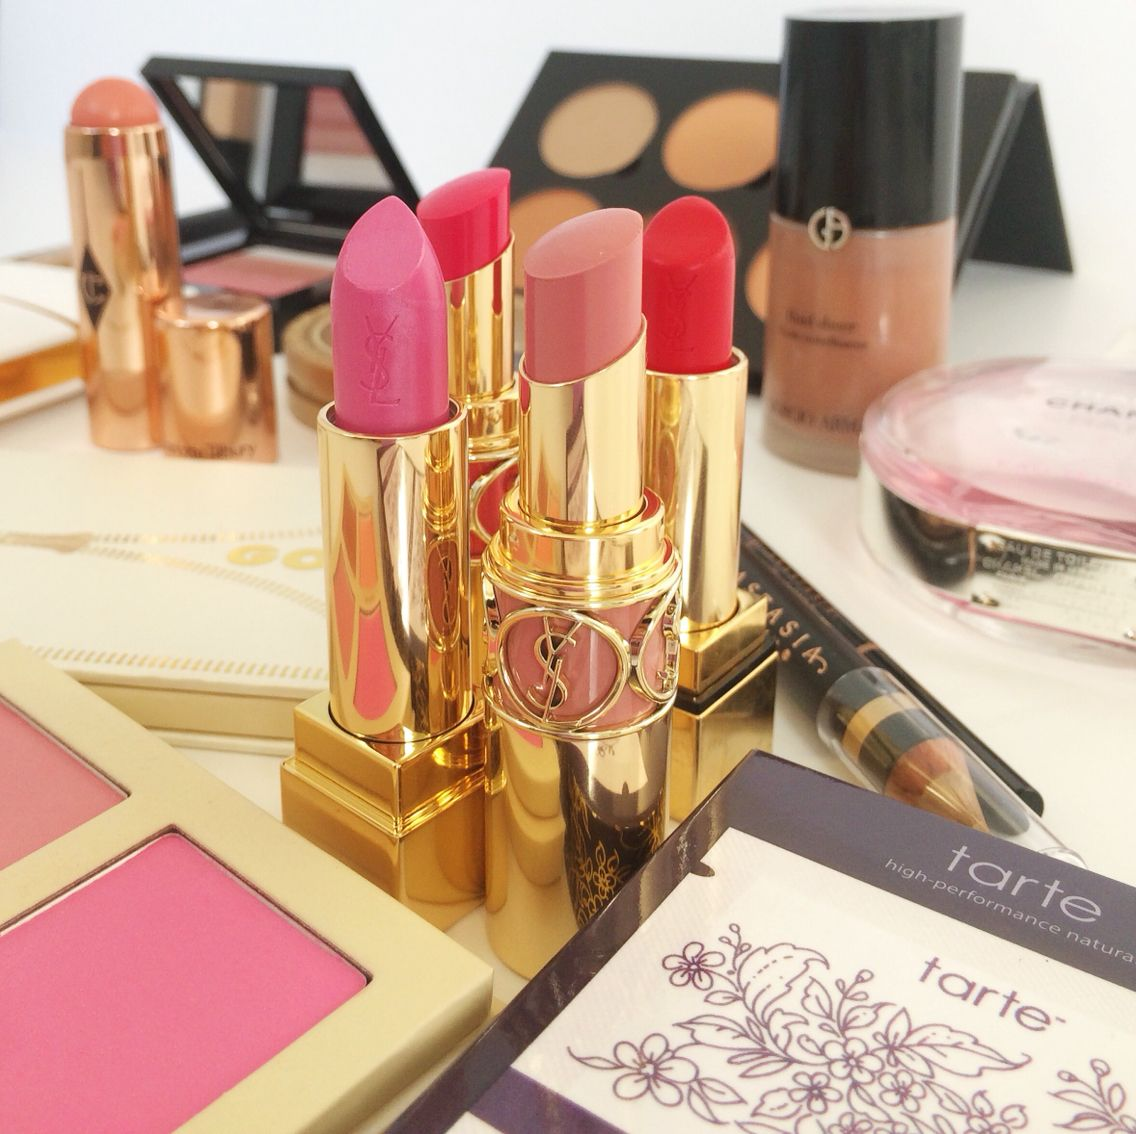 Valentine's Day beauty - YSL lipsticks, LORAC UNZIPPED, TARTE-- and More on Petals and Pumps.